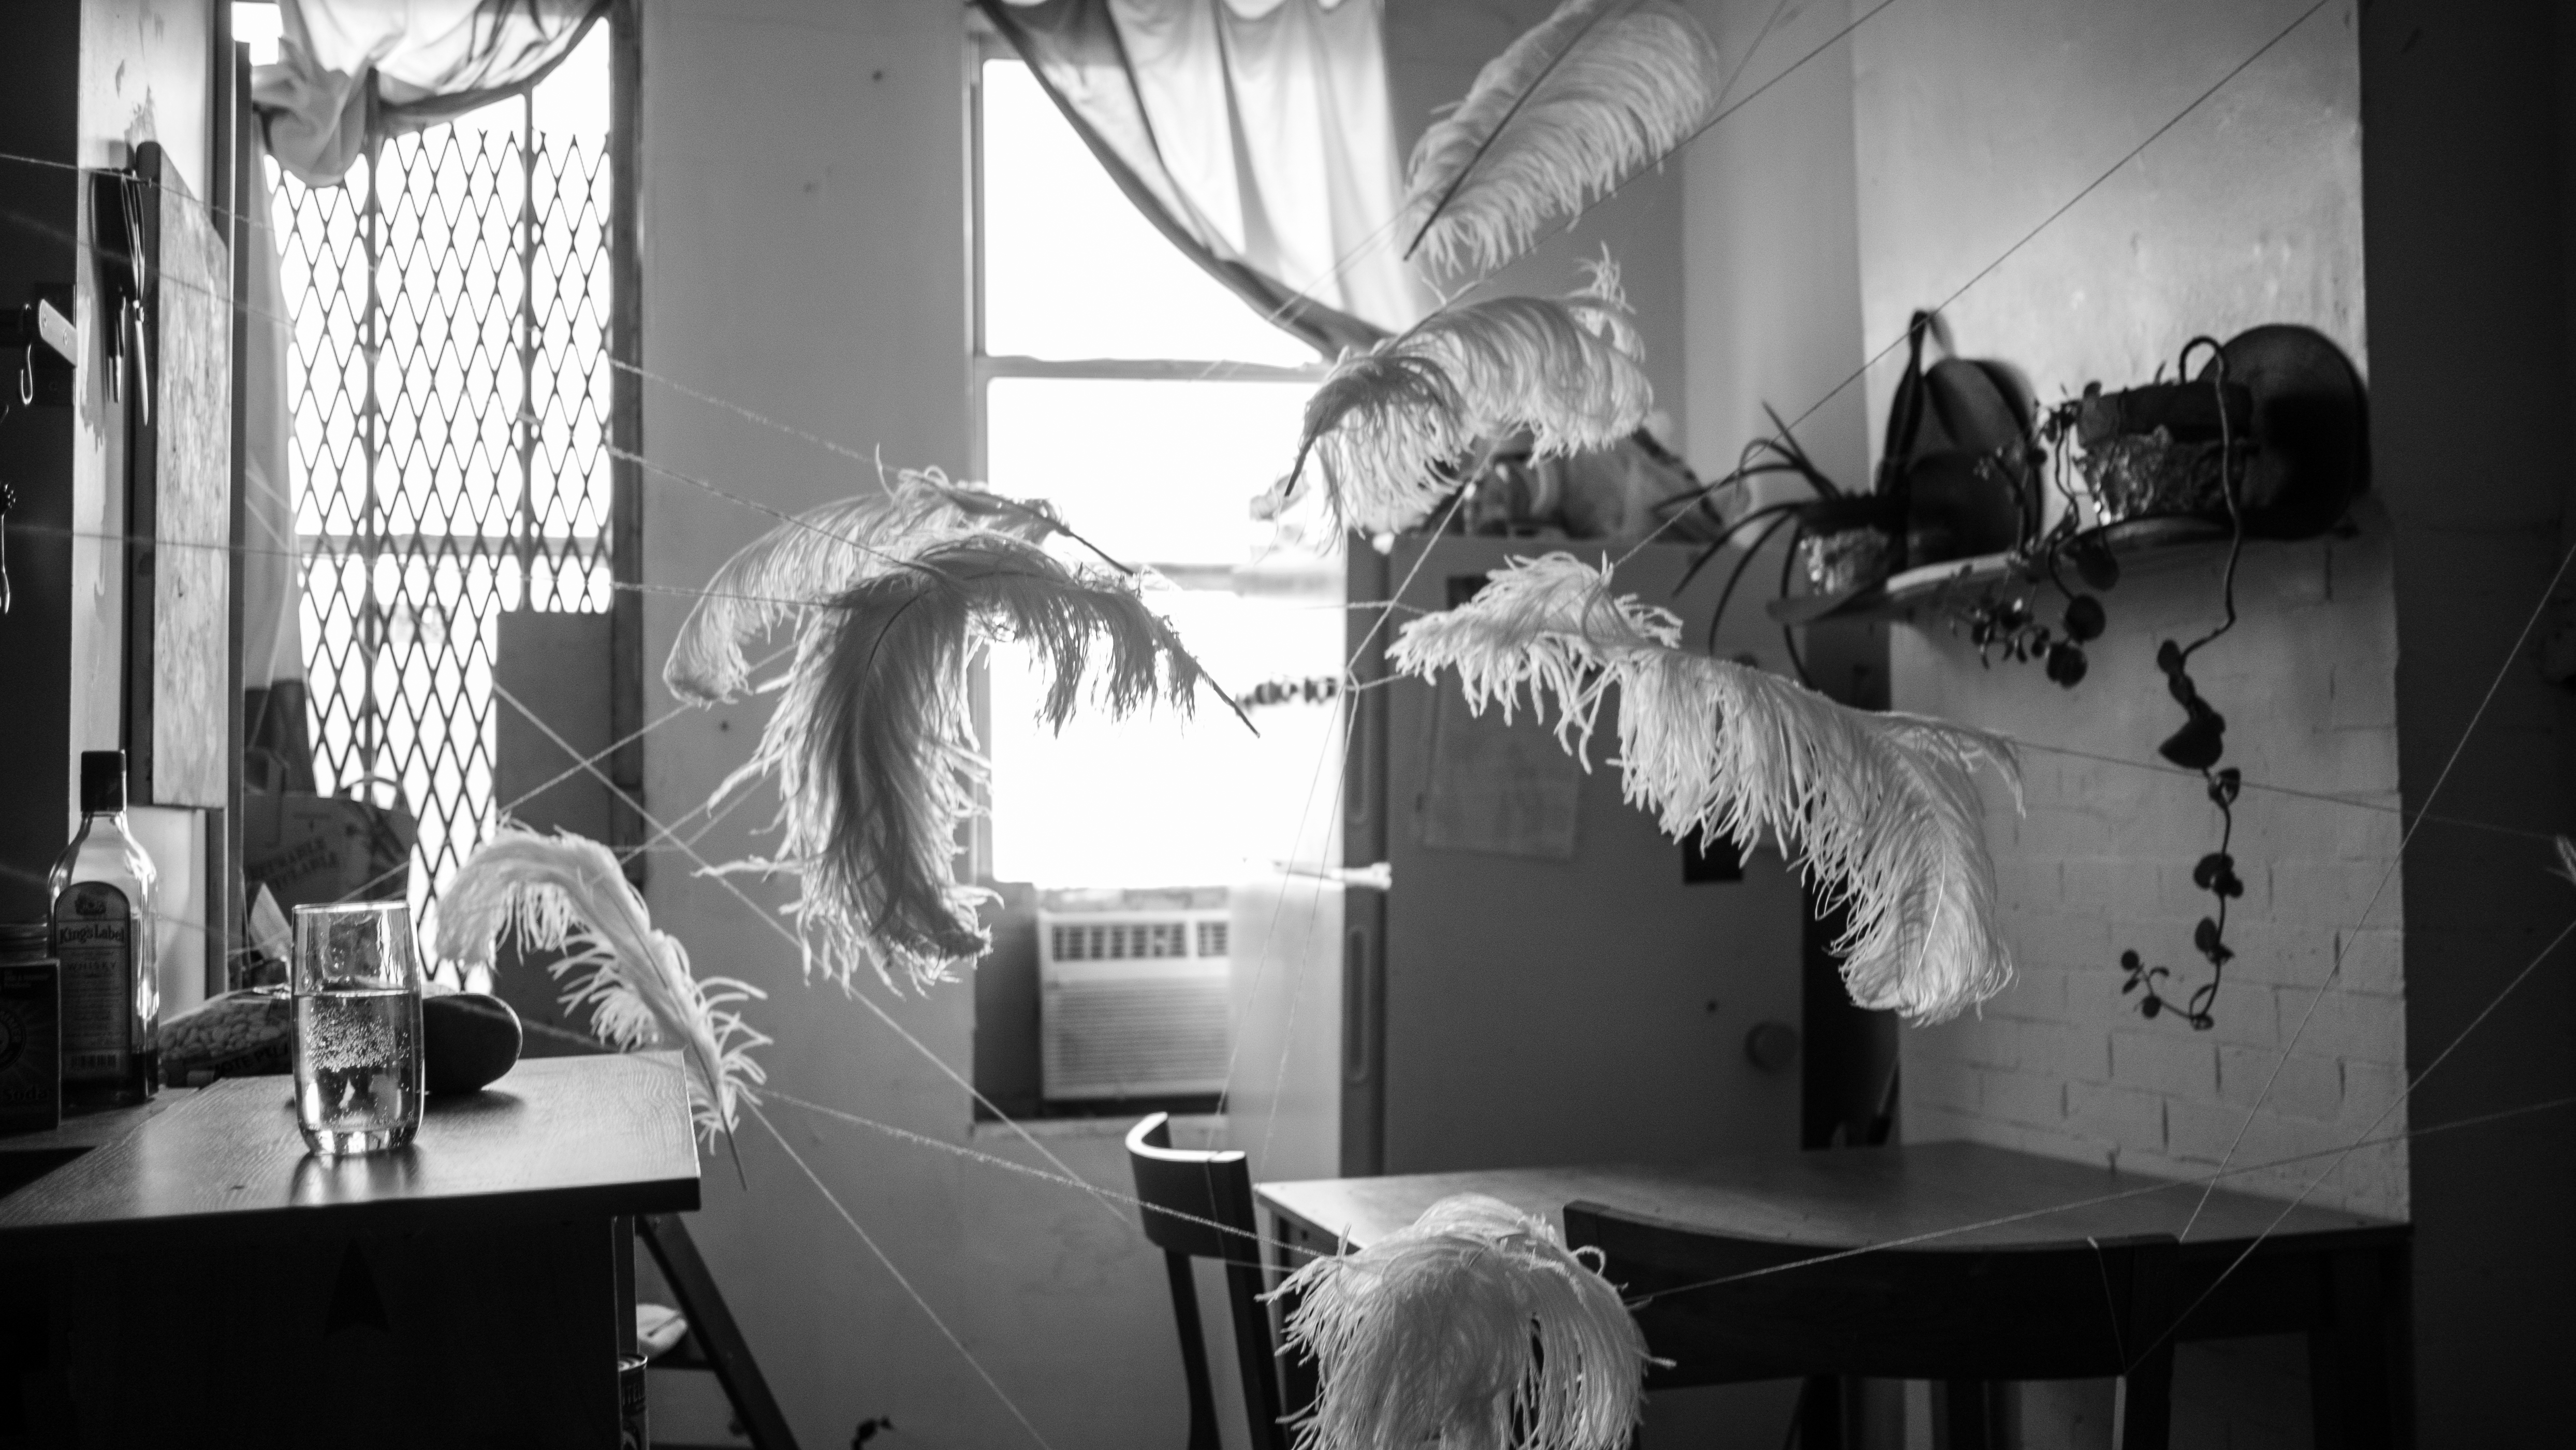 feathers installation whitney biennale (10 of 10)